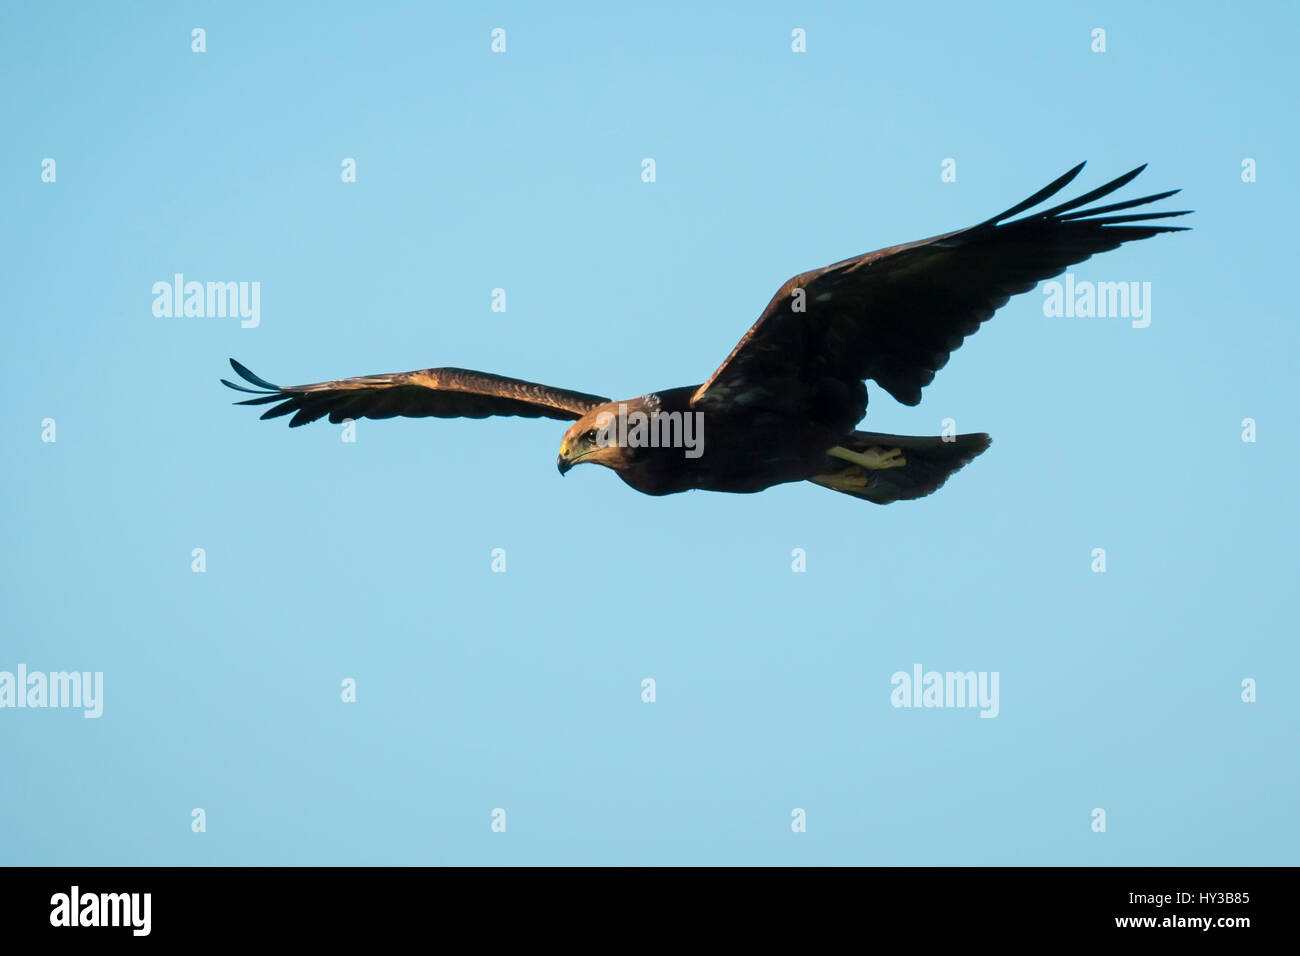 Western marsh harrier, Circus aeruginosus, bird of prey in flight searching and hunting above a field Stock Photo